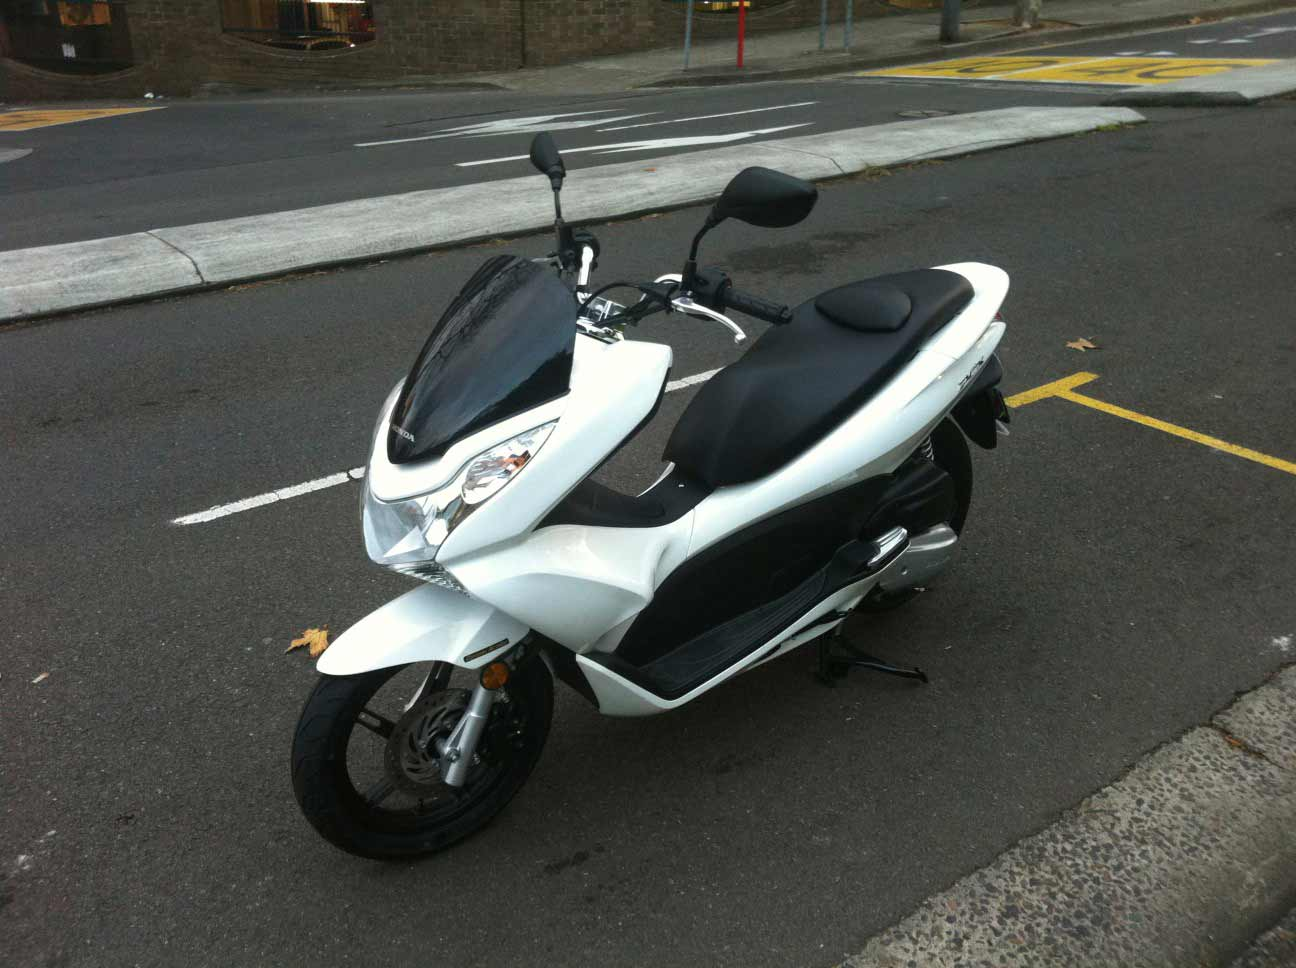 sold 2011 honda pcx 125 for sale 3000 sydney scooter community everything about scooters. Black Bedroom Furniture Sets. Home Design Ideas